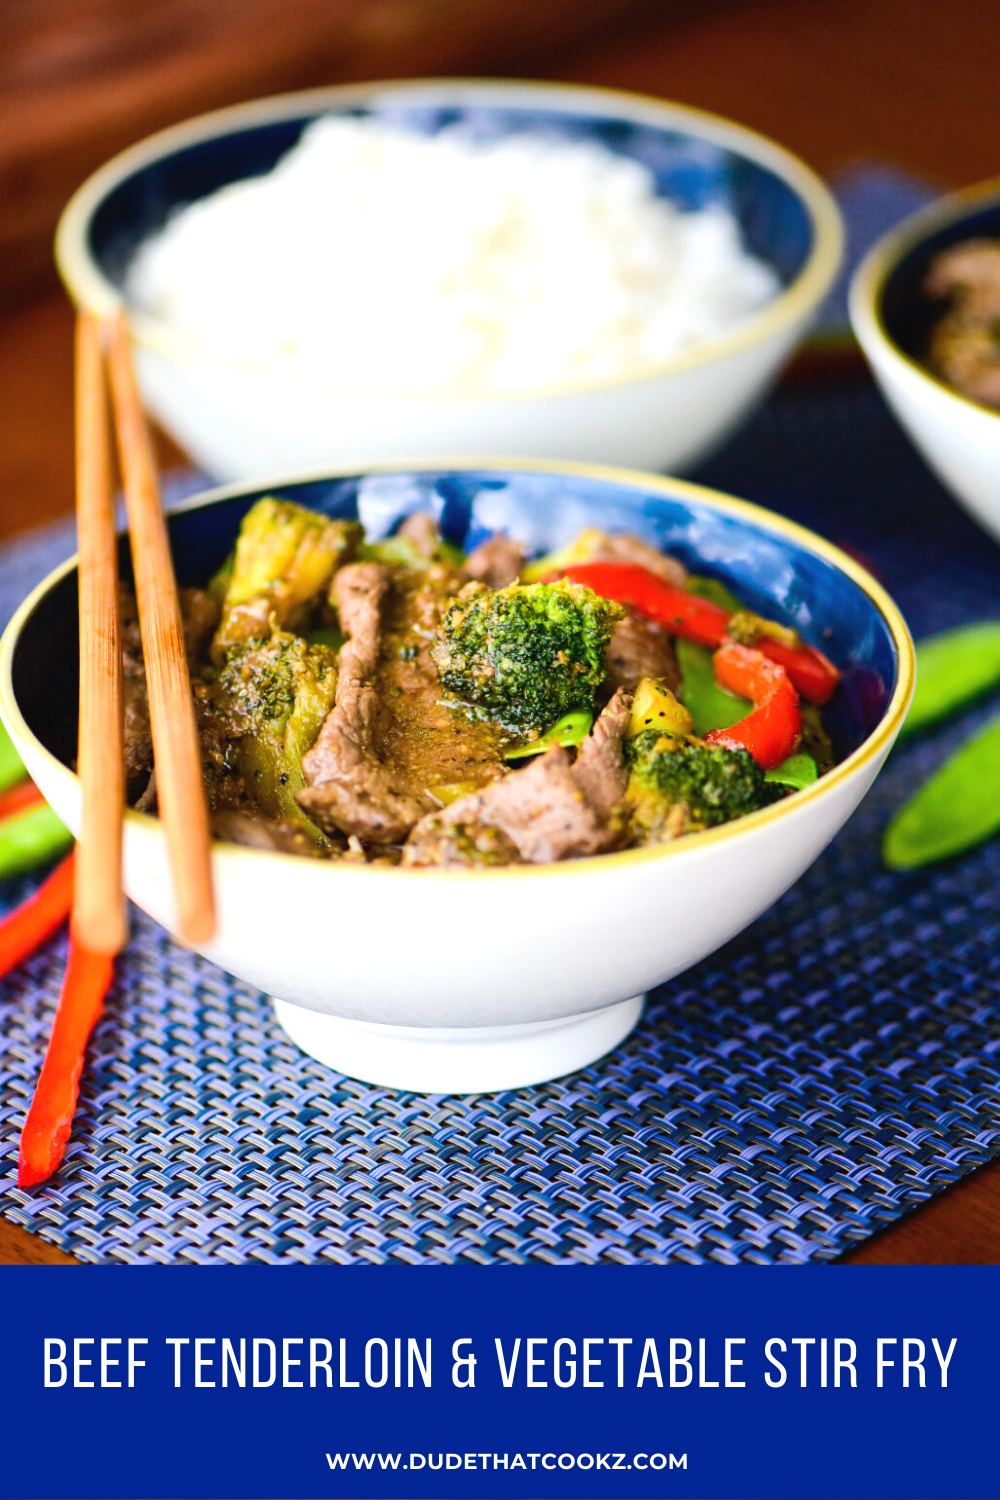 Beef Tenderloin & Vegetable Stir Fry